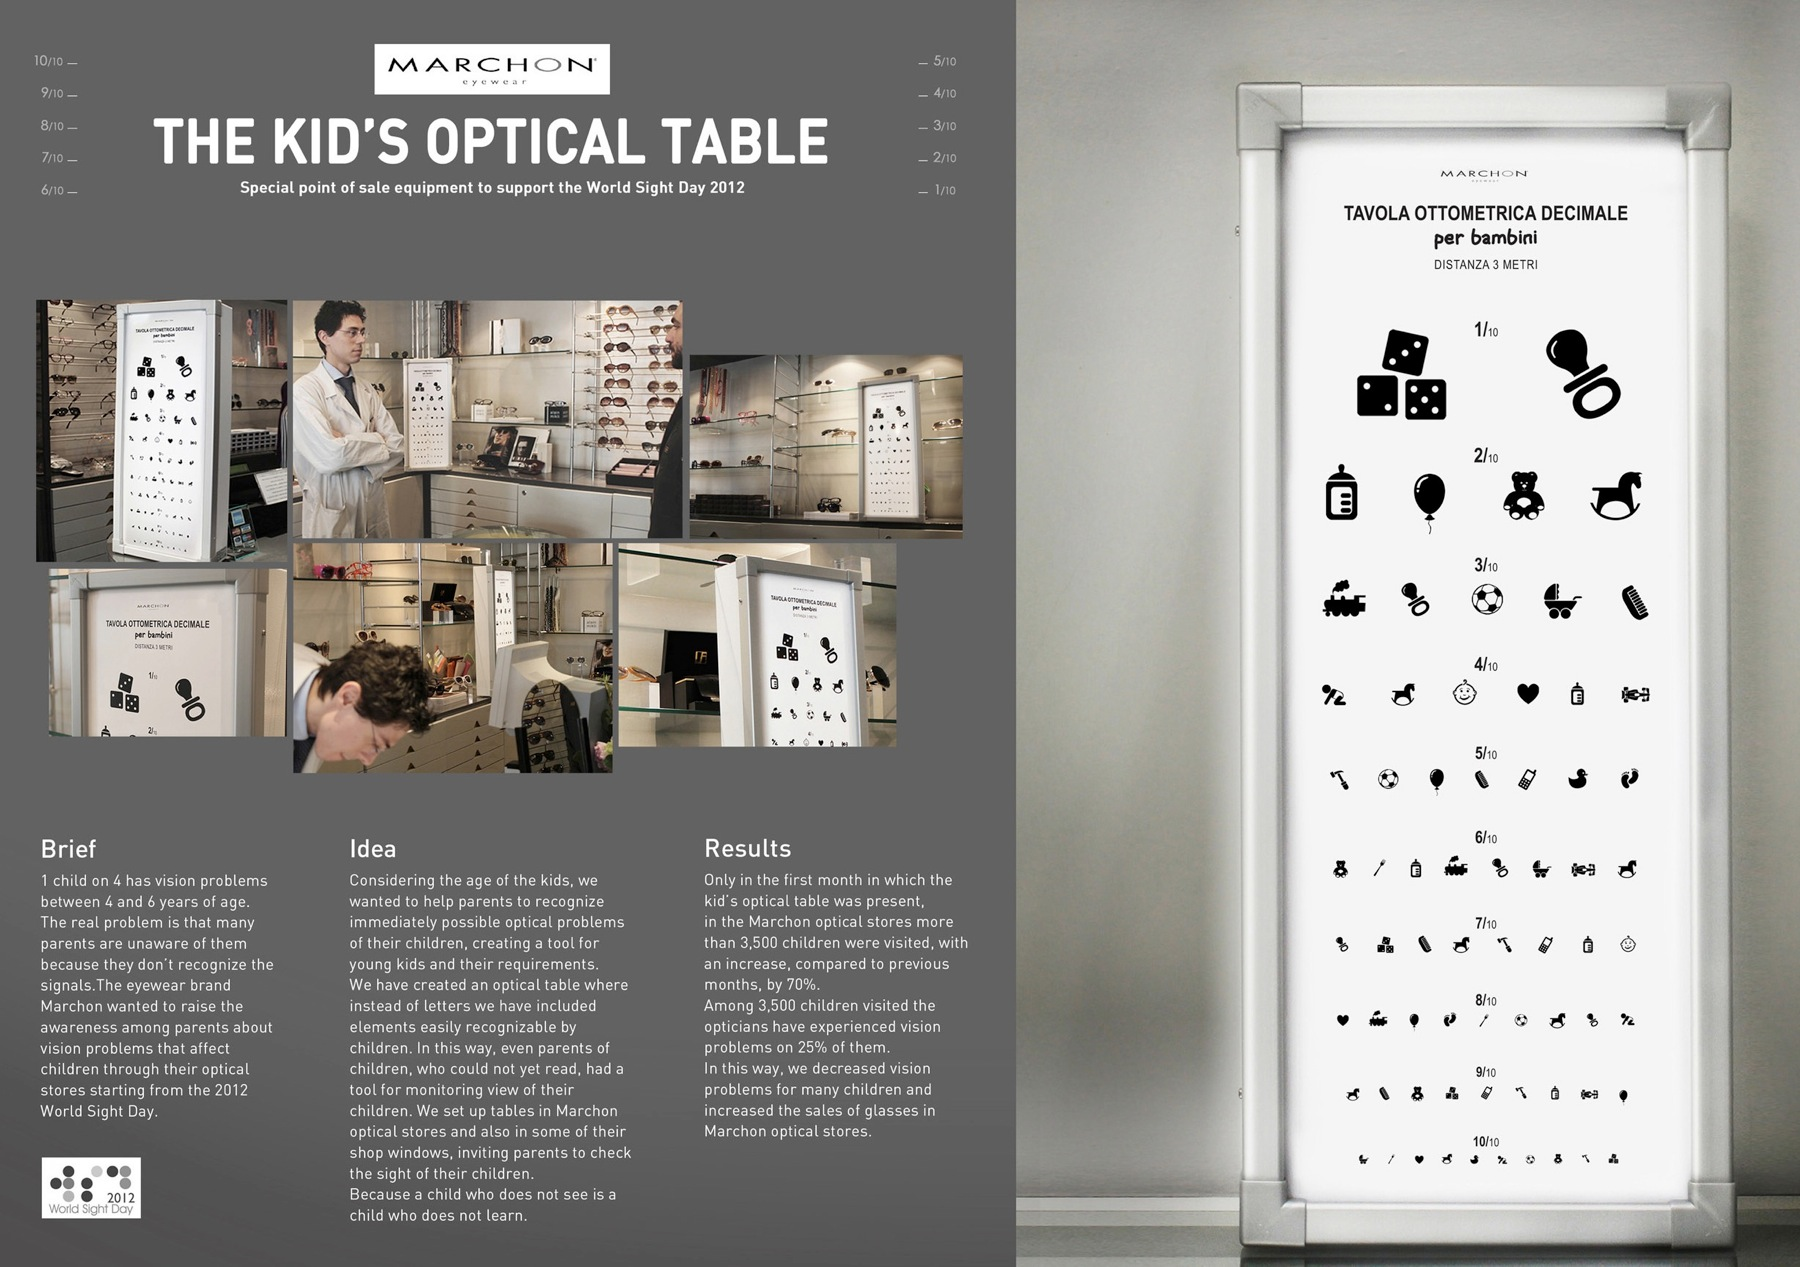 Marchon-Eyewear-The-Kids-Optical-Table.jpg